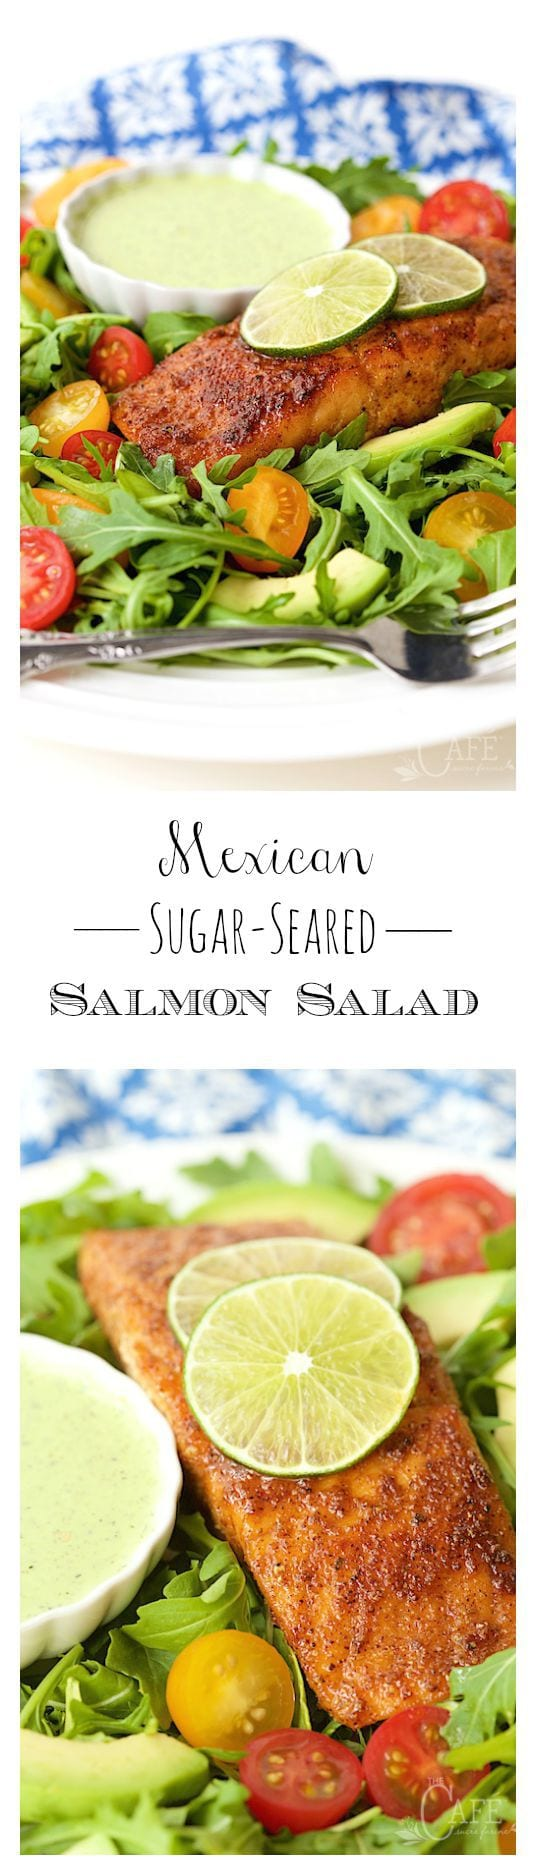 This is the easiest and by far the most delicious salmon salad we've ever had. It's super versatile too!